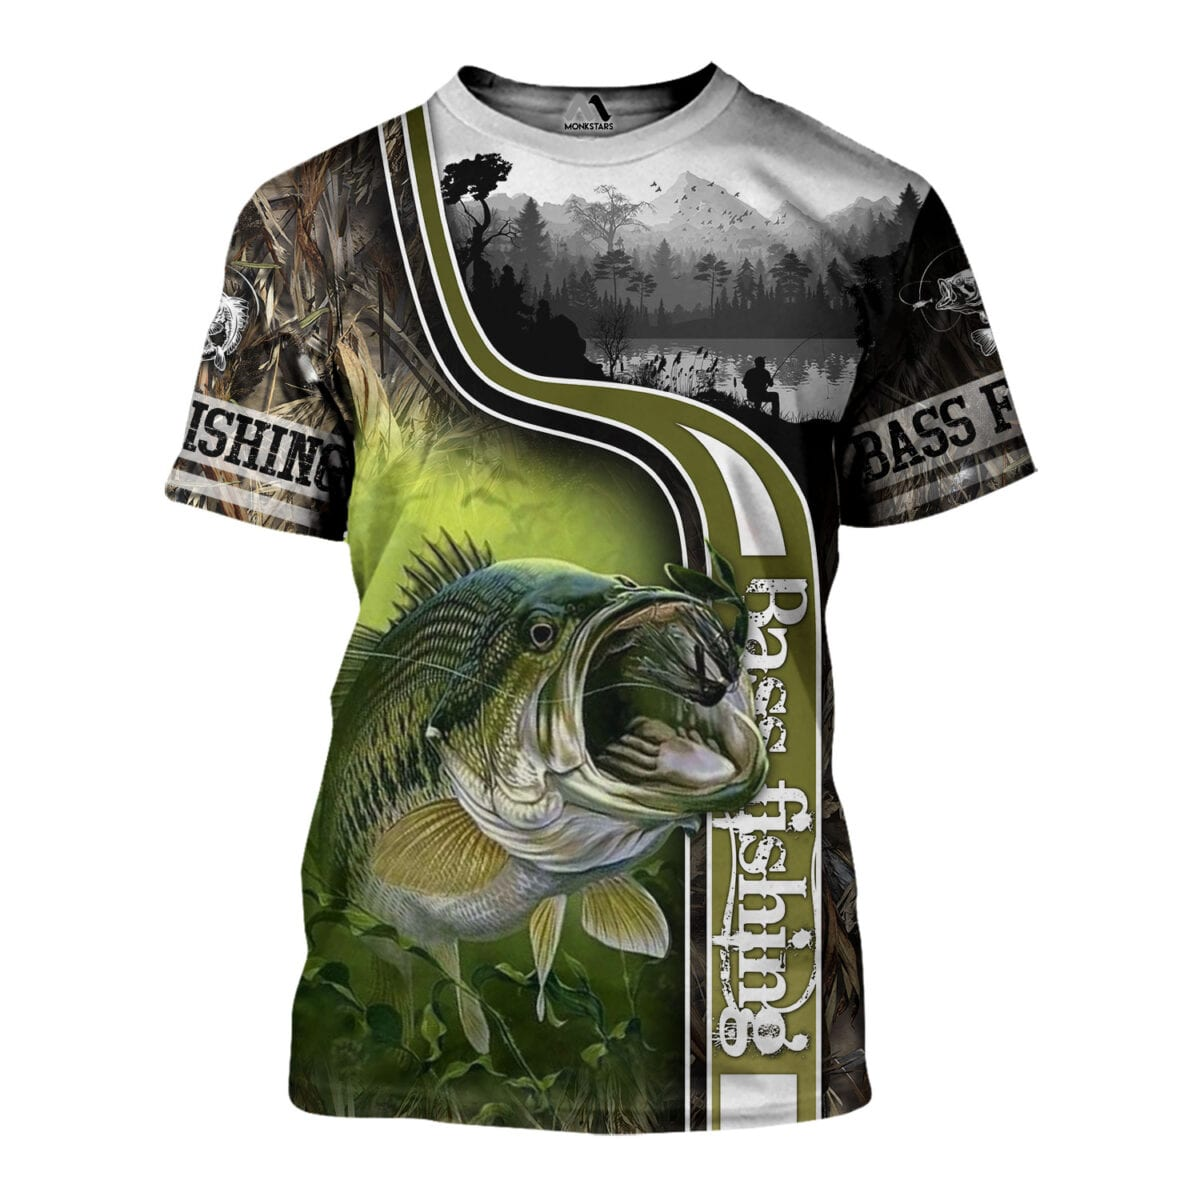 Bass Fishing 3D All Over Printed Shirts for Men and Women 8